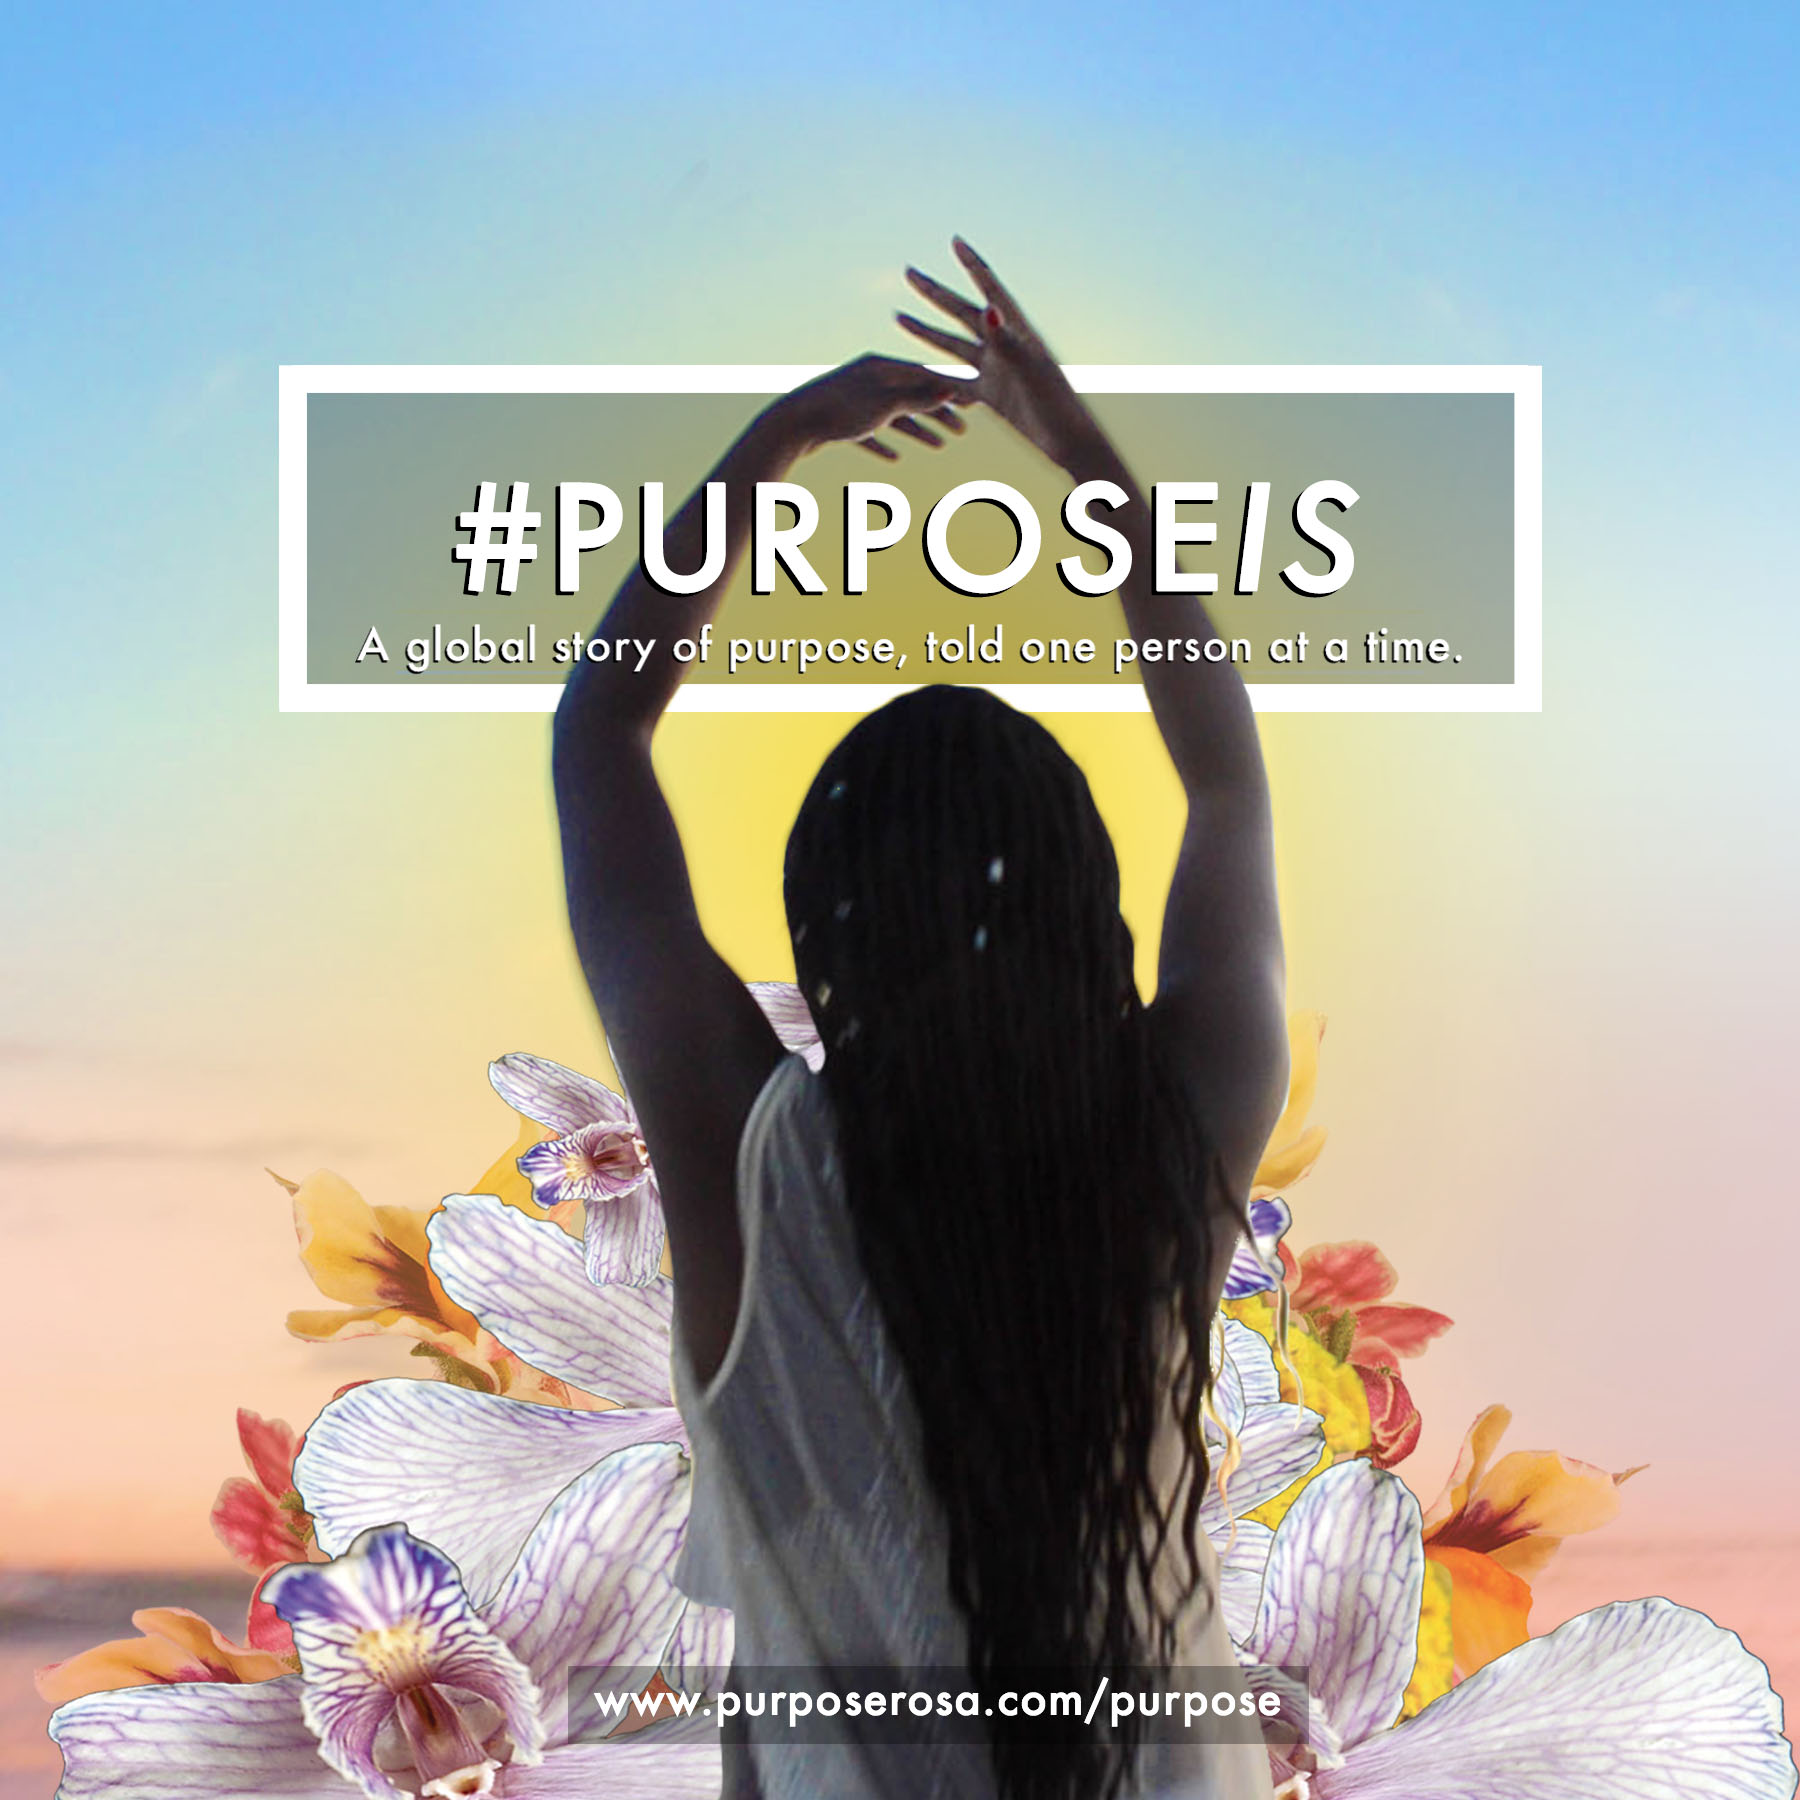 #PurposeIs Image.jpg